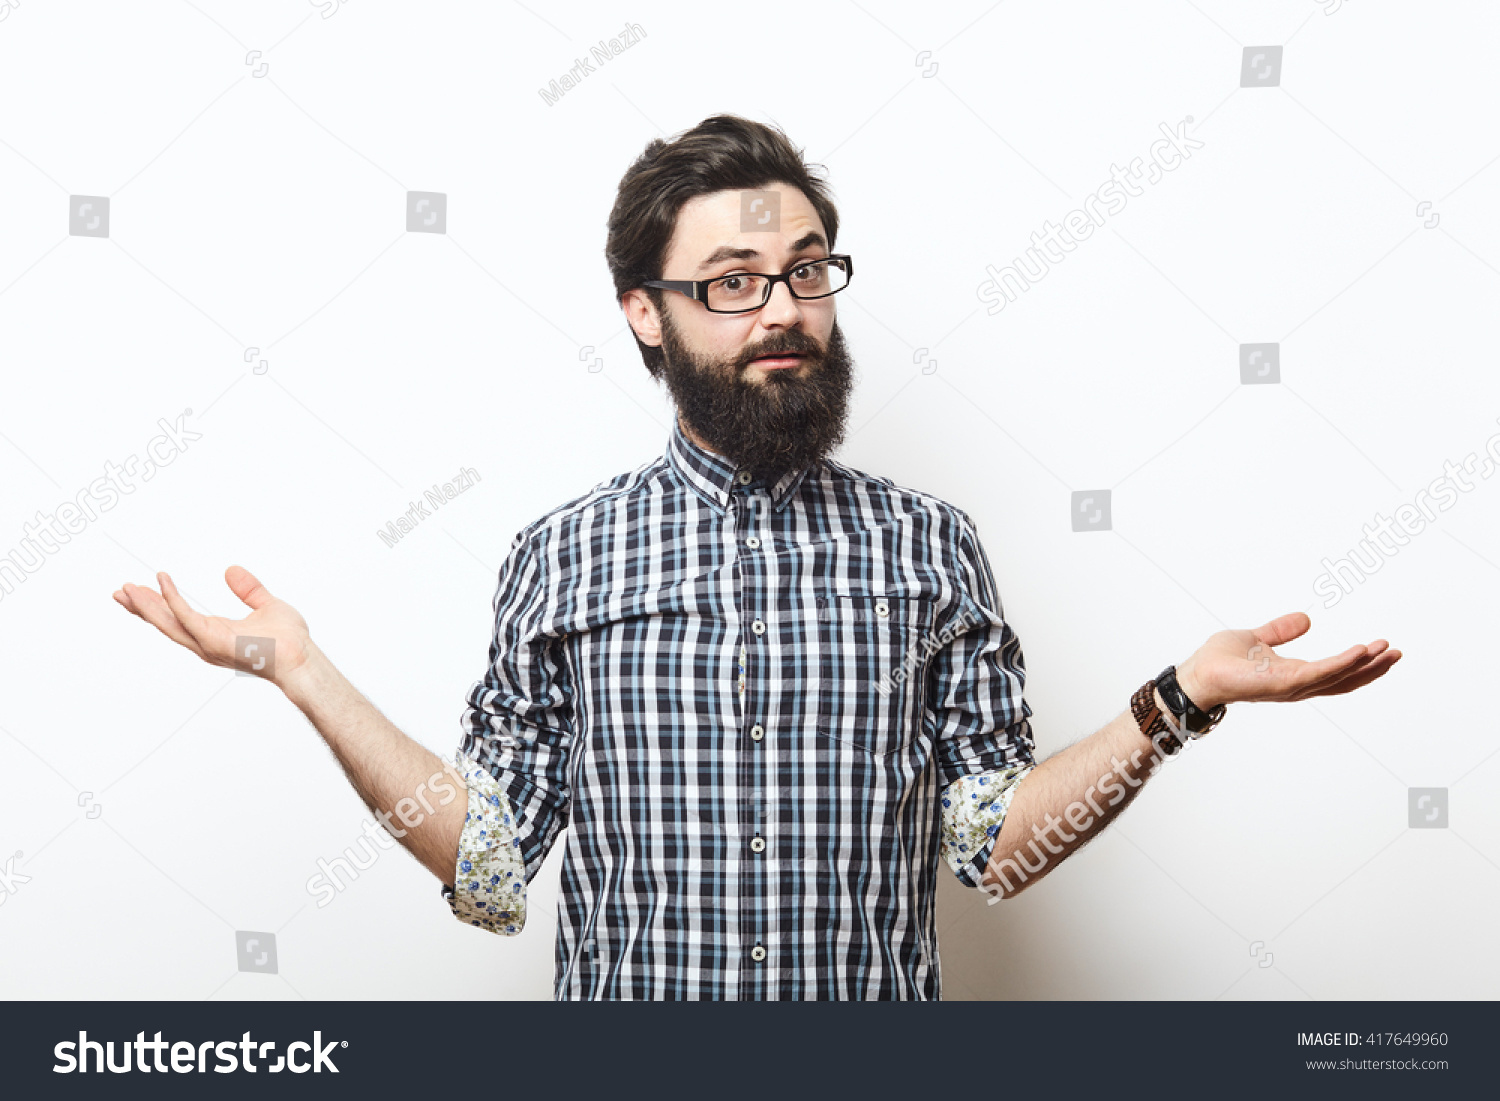 Bearded Hipster Young Man Wearing Glasses Stock Photo ...